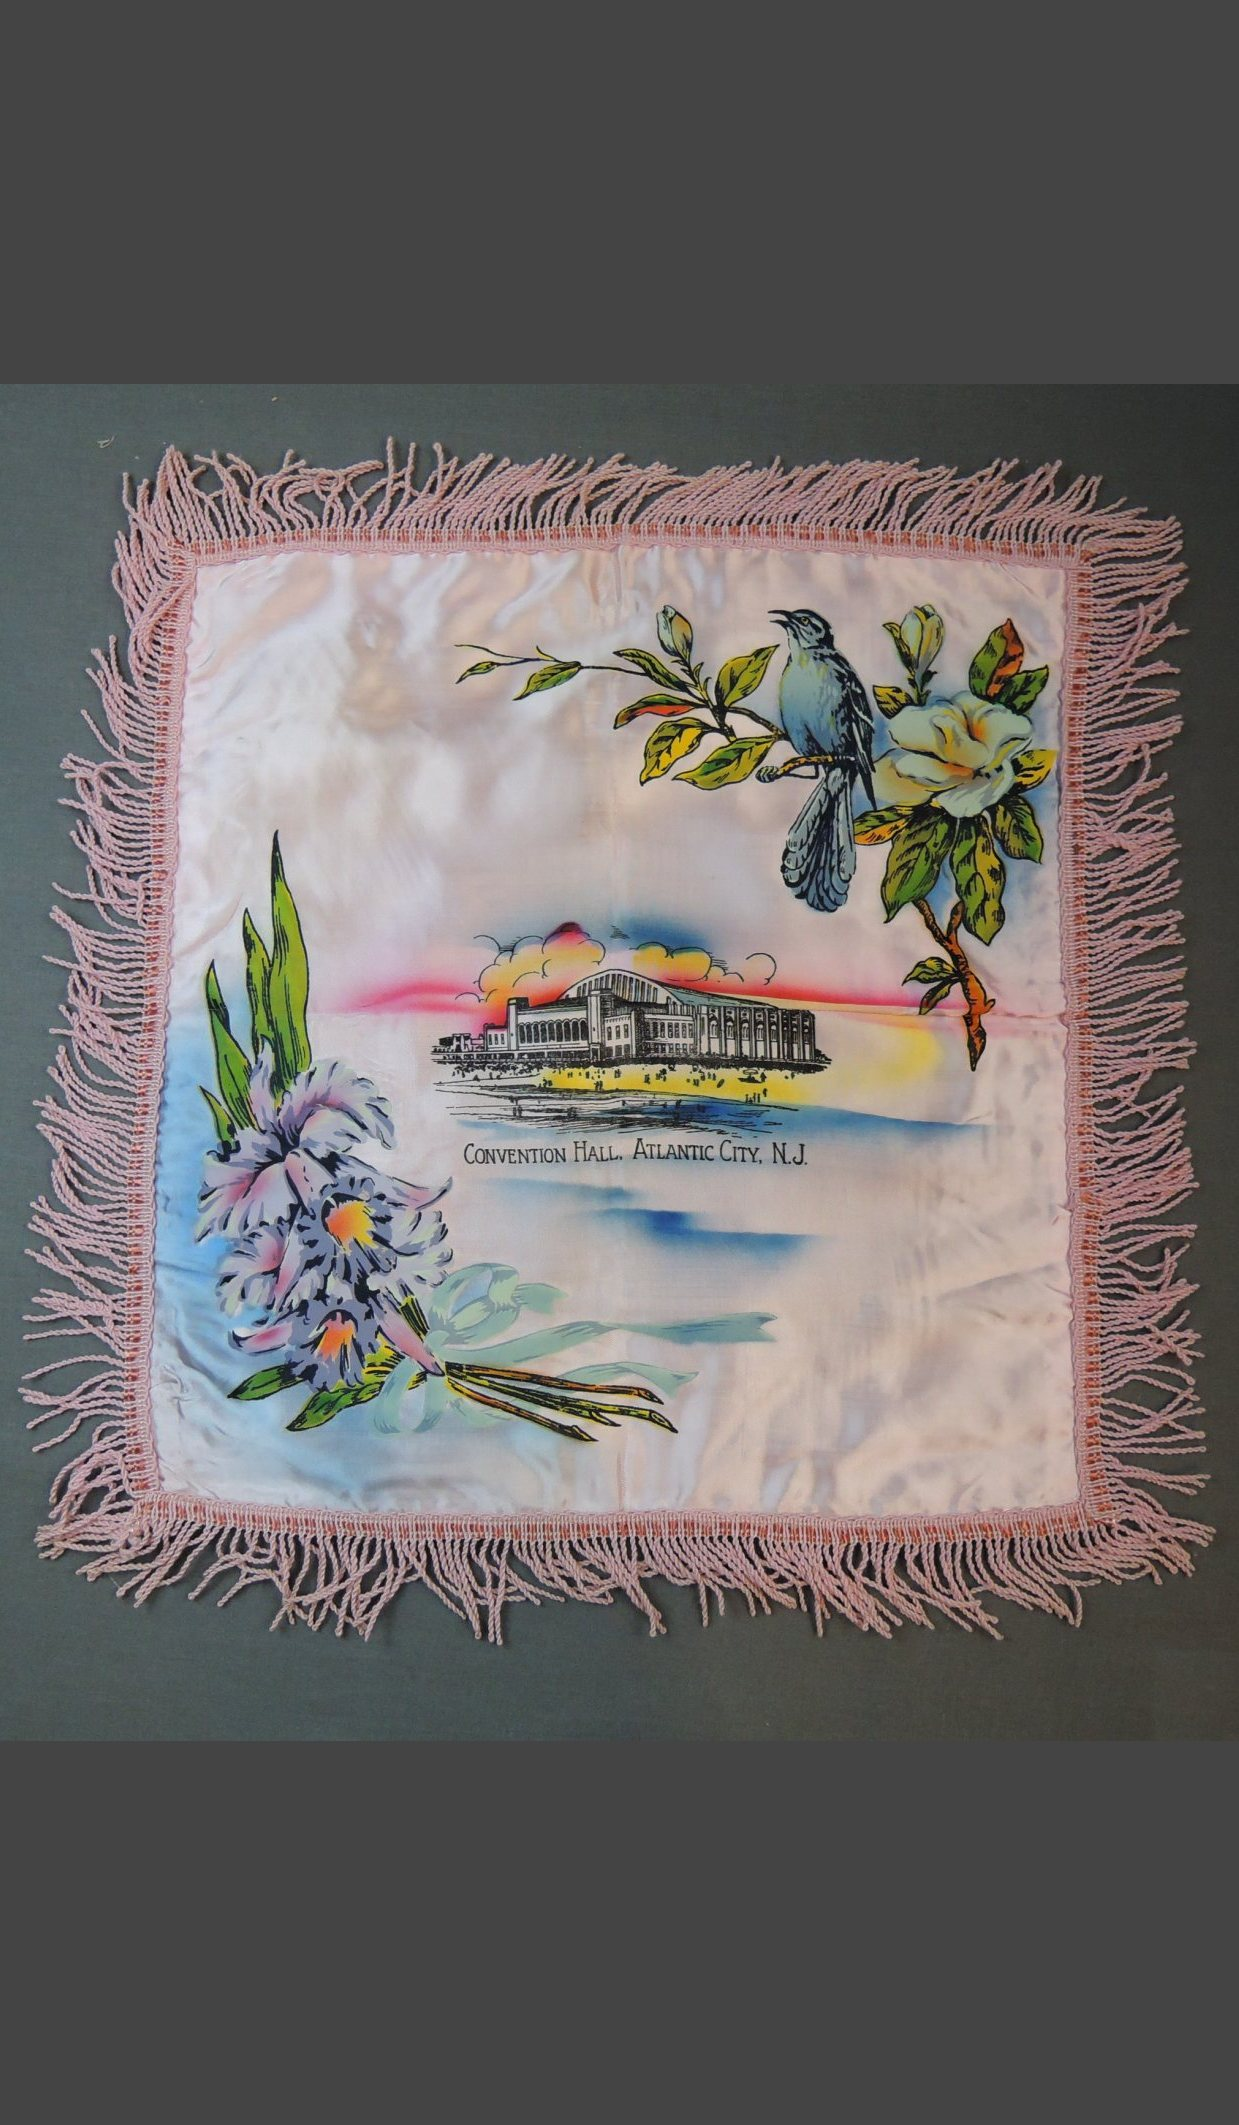 Vintage Atlantic City NJ 1940s Satin Pillow Cover with Fringe, Convention Hall Souvenir, unused